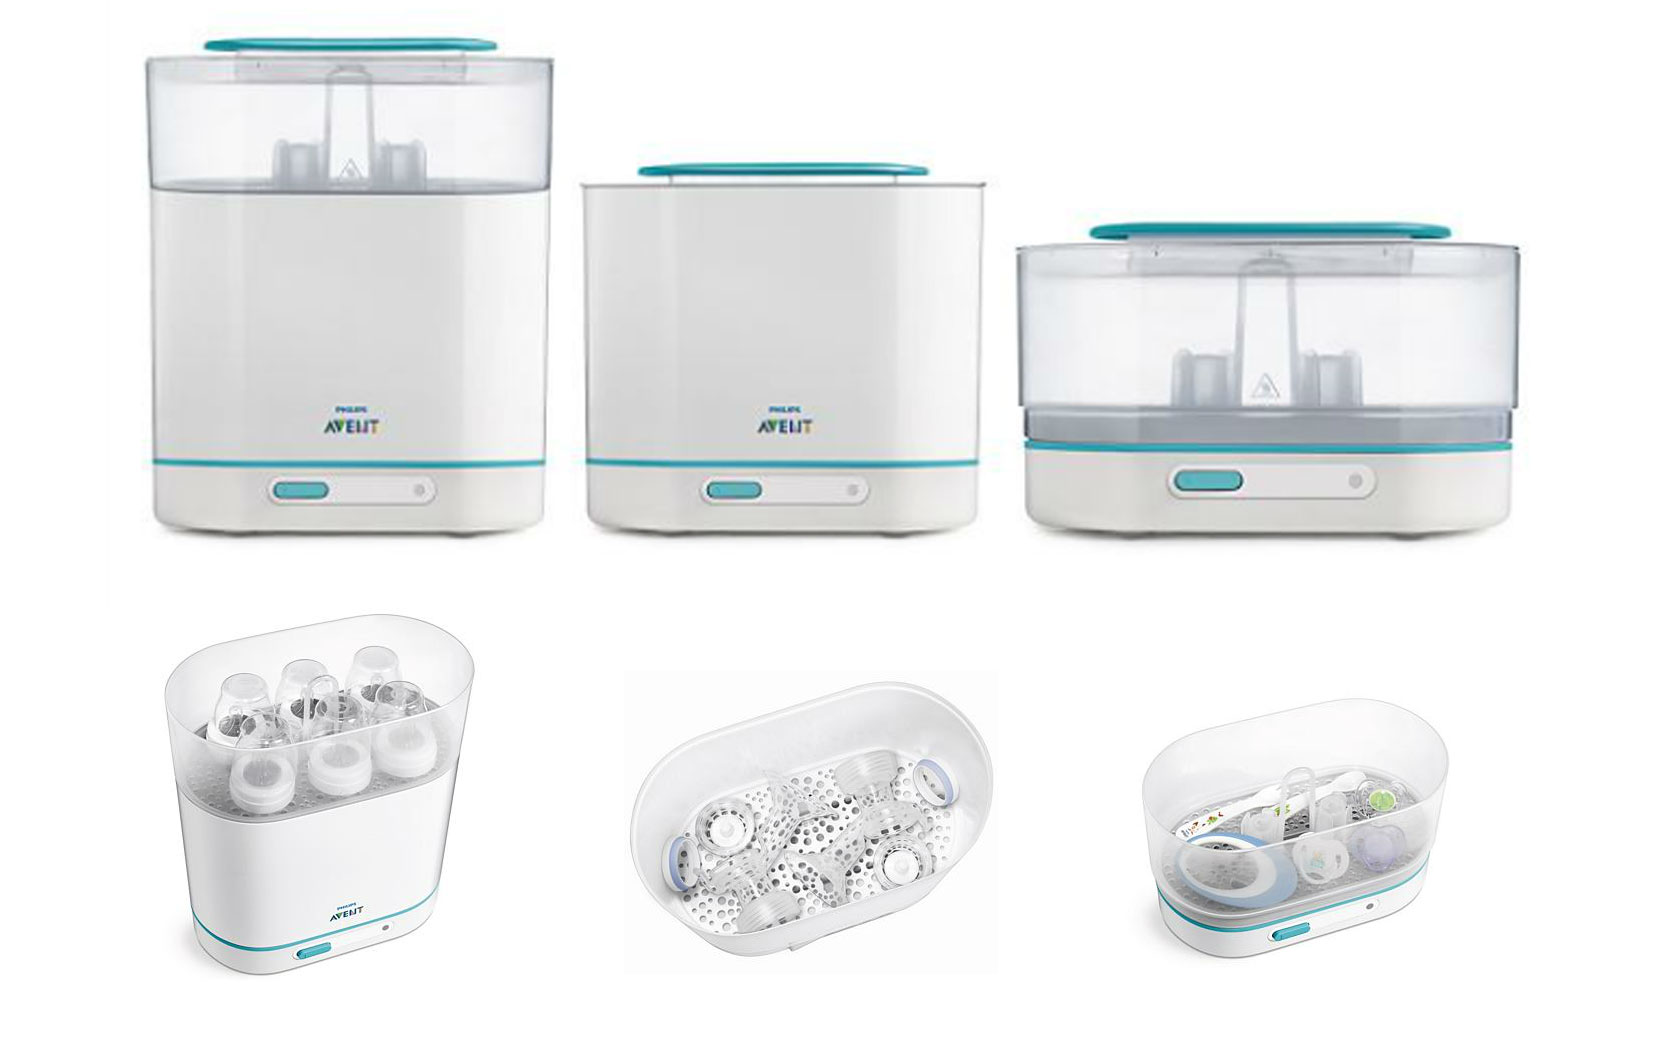 tommee tippee bottle sterilizer instructions for microwave